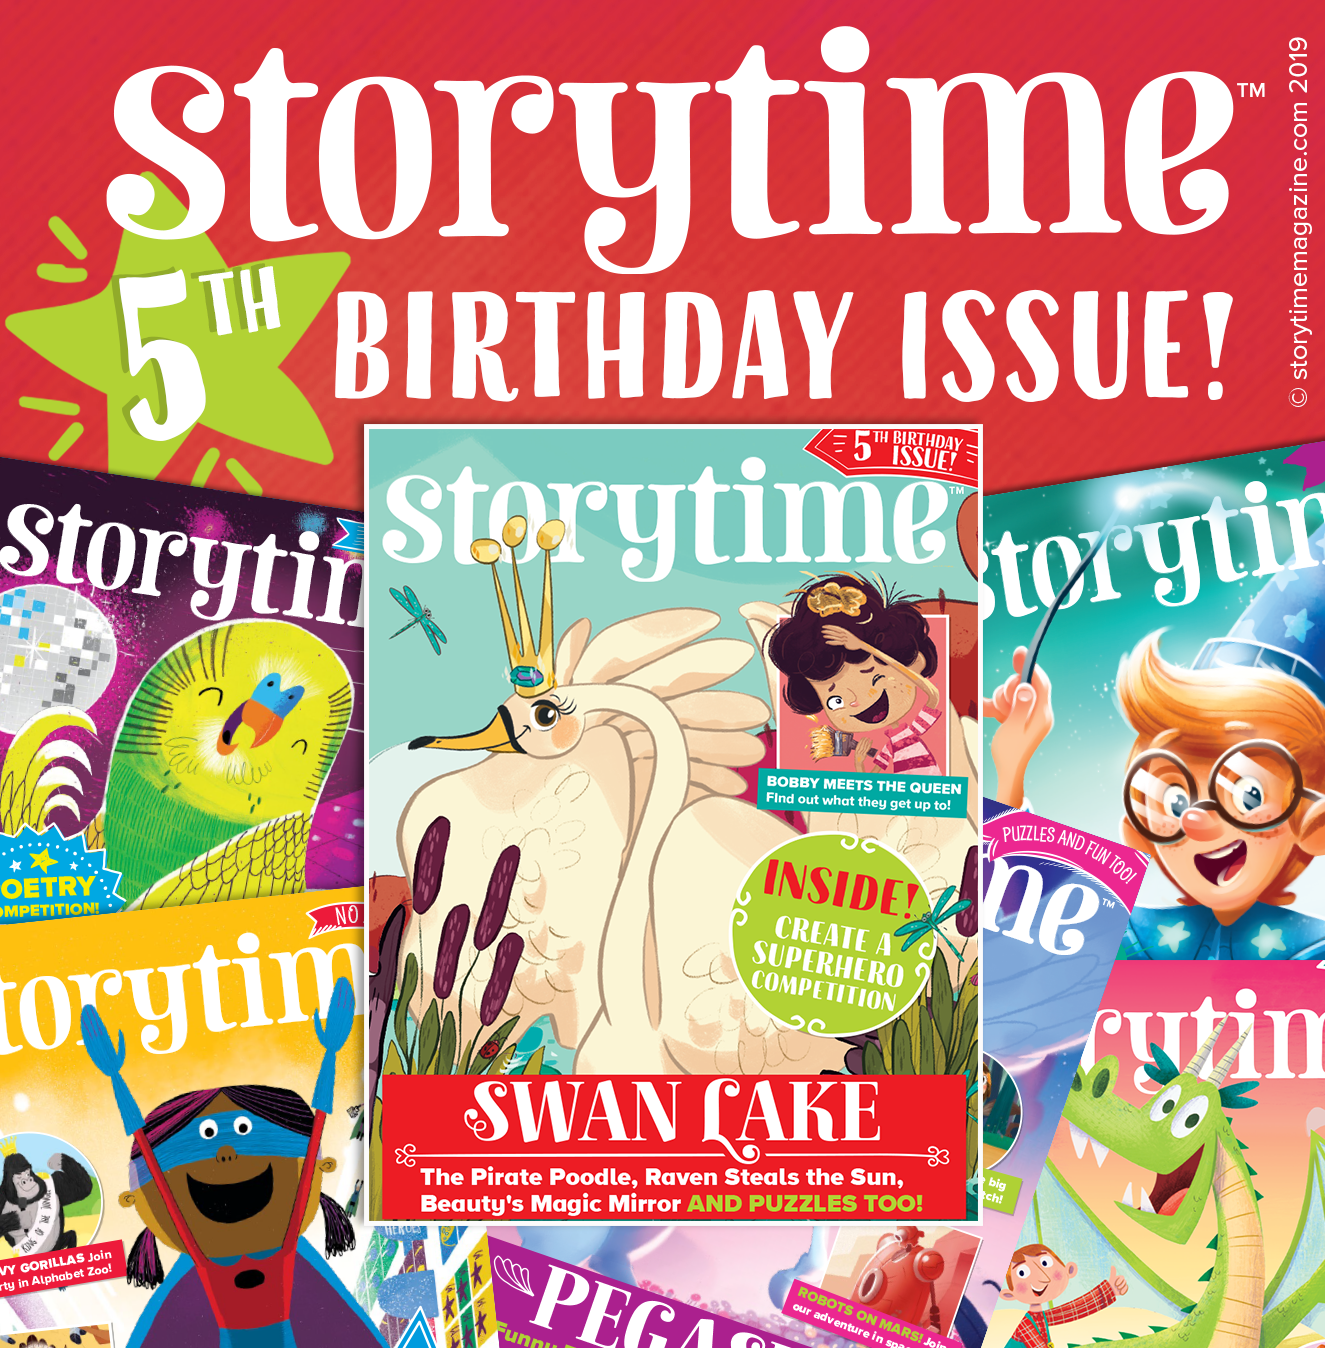 Storytime Issue 61, 5th birthday issue, Swan lake